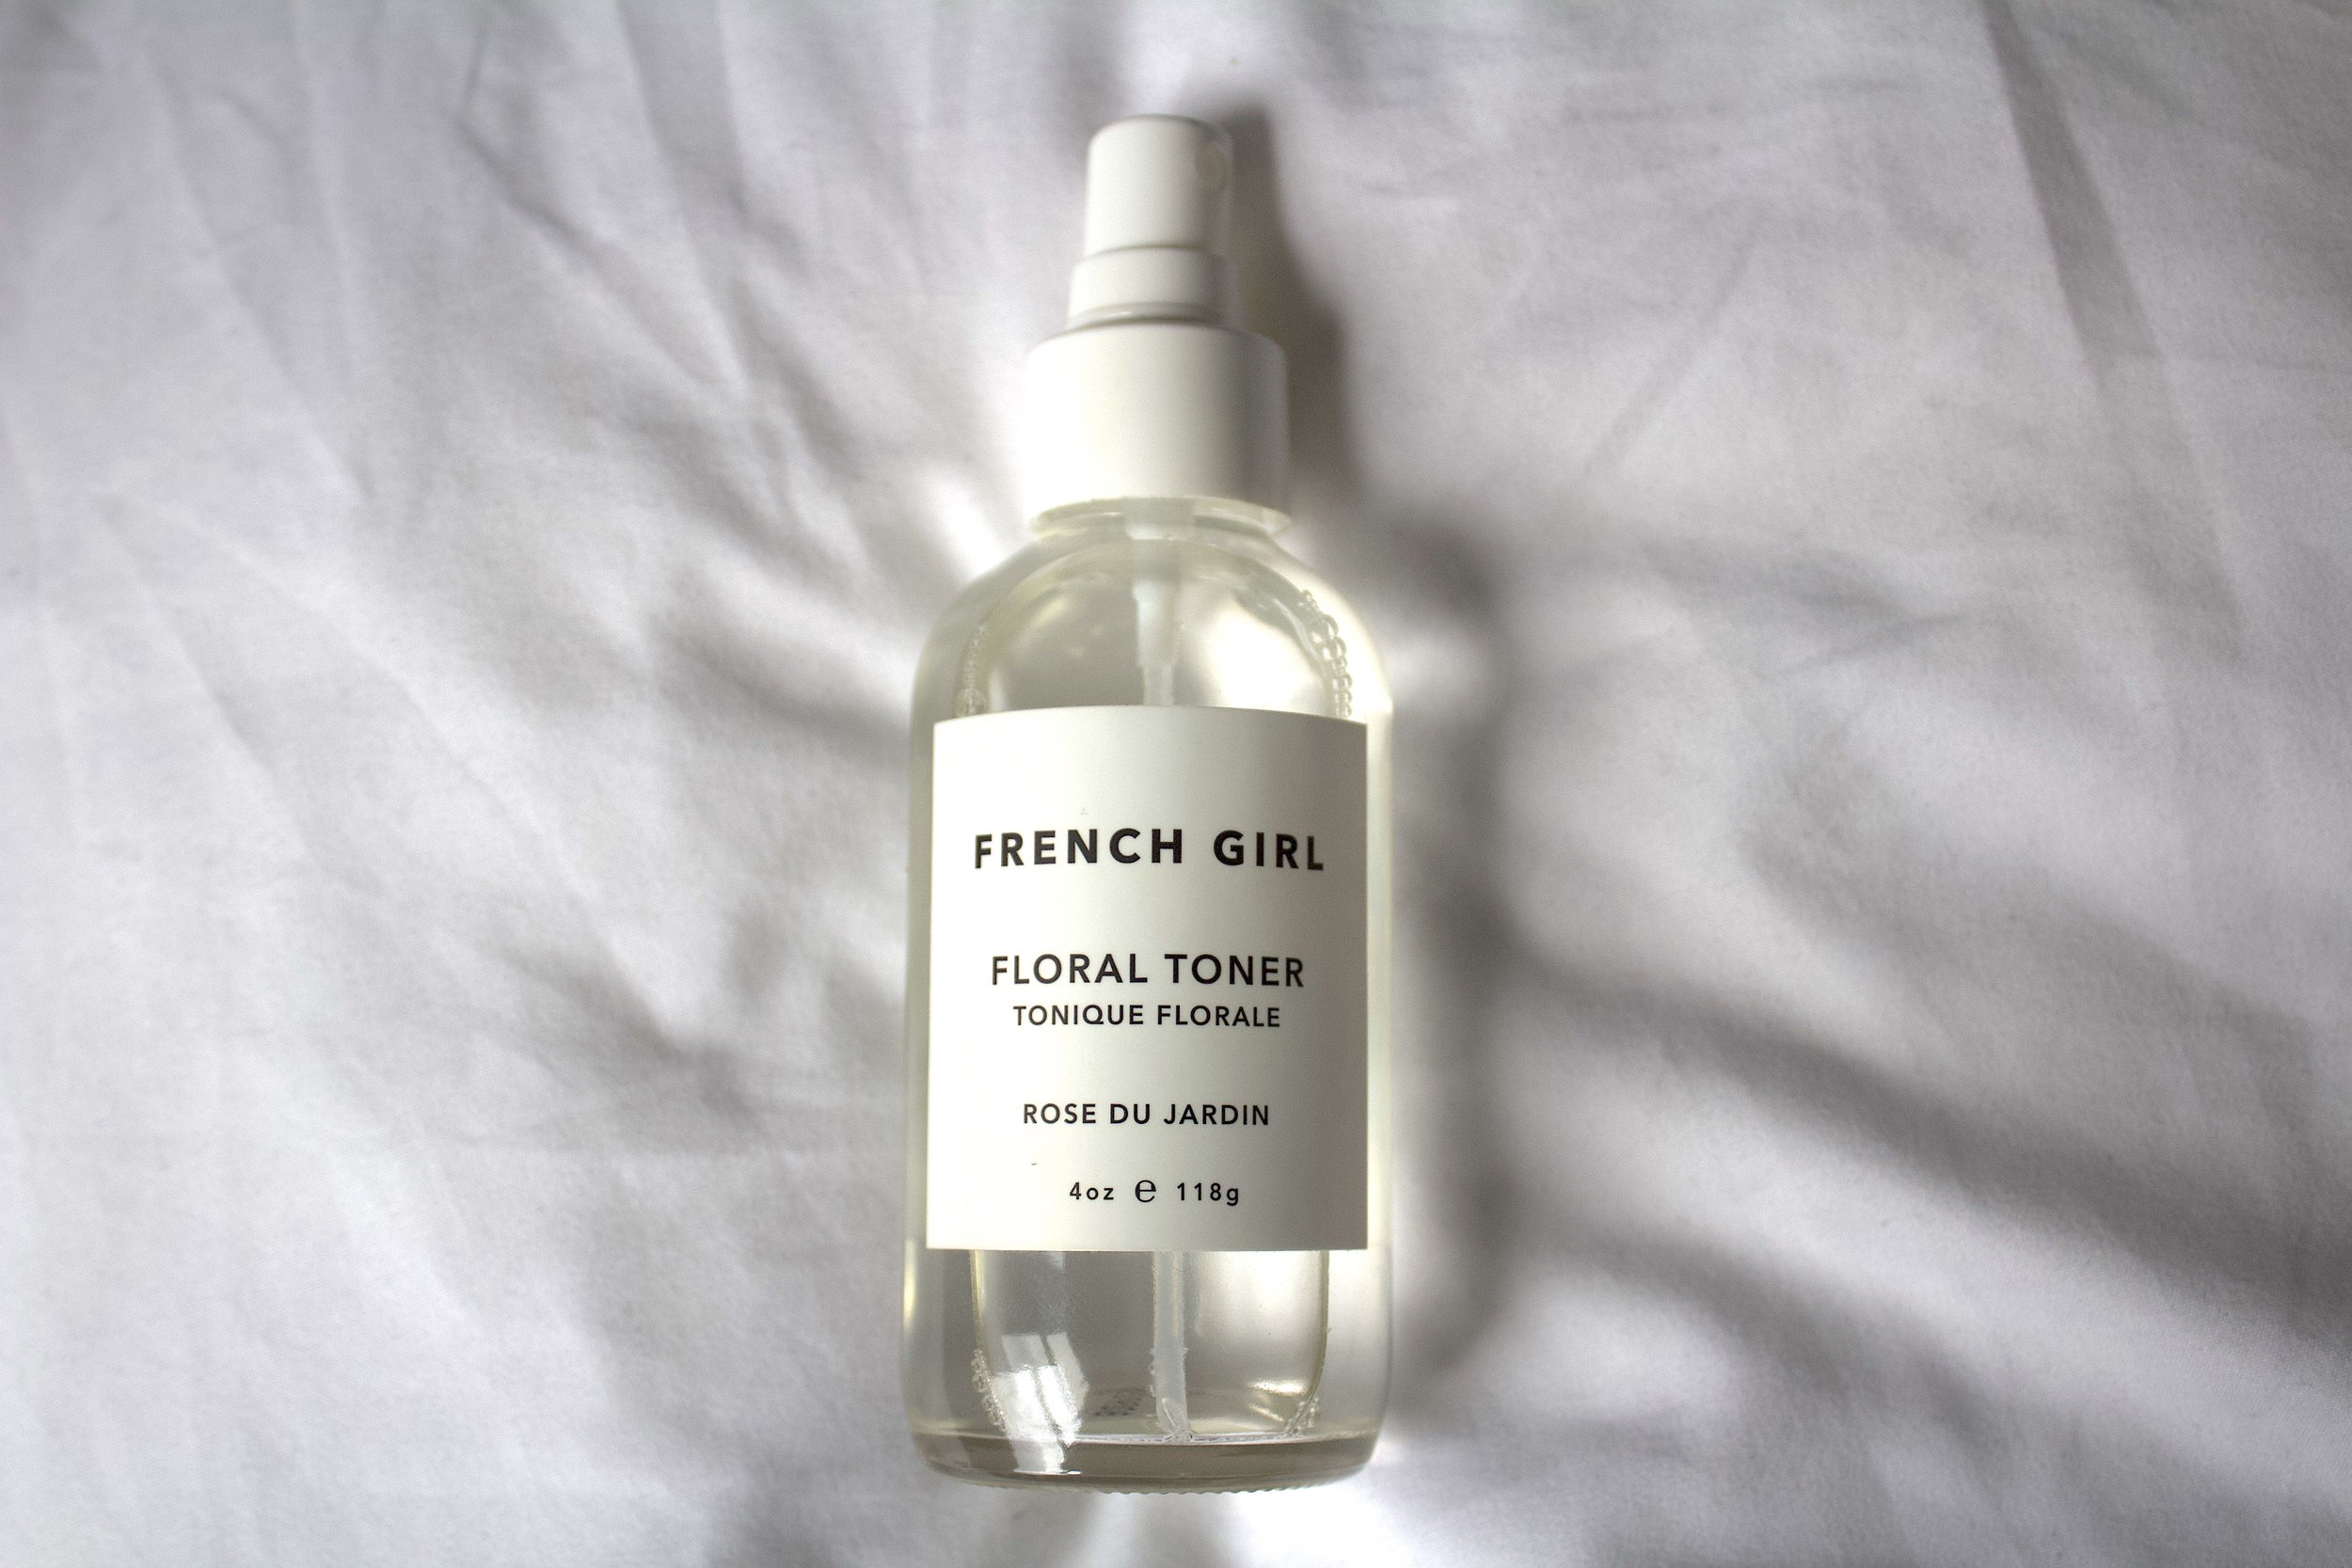 French Girl - Floral Toner $32